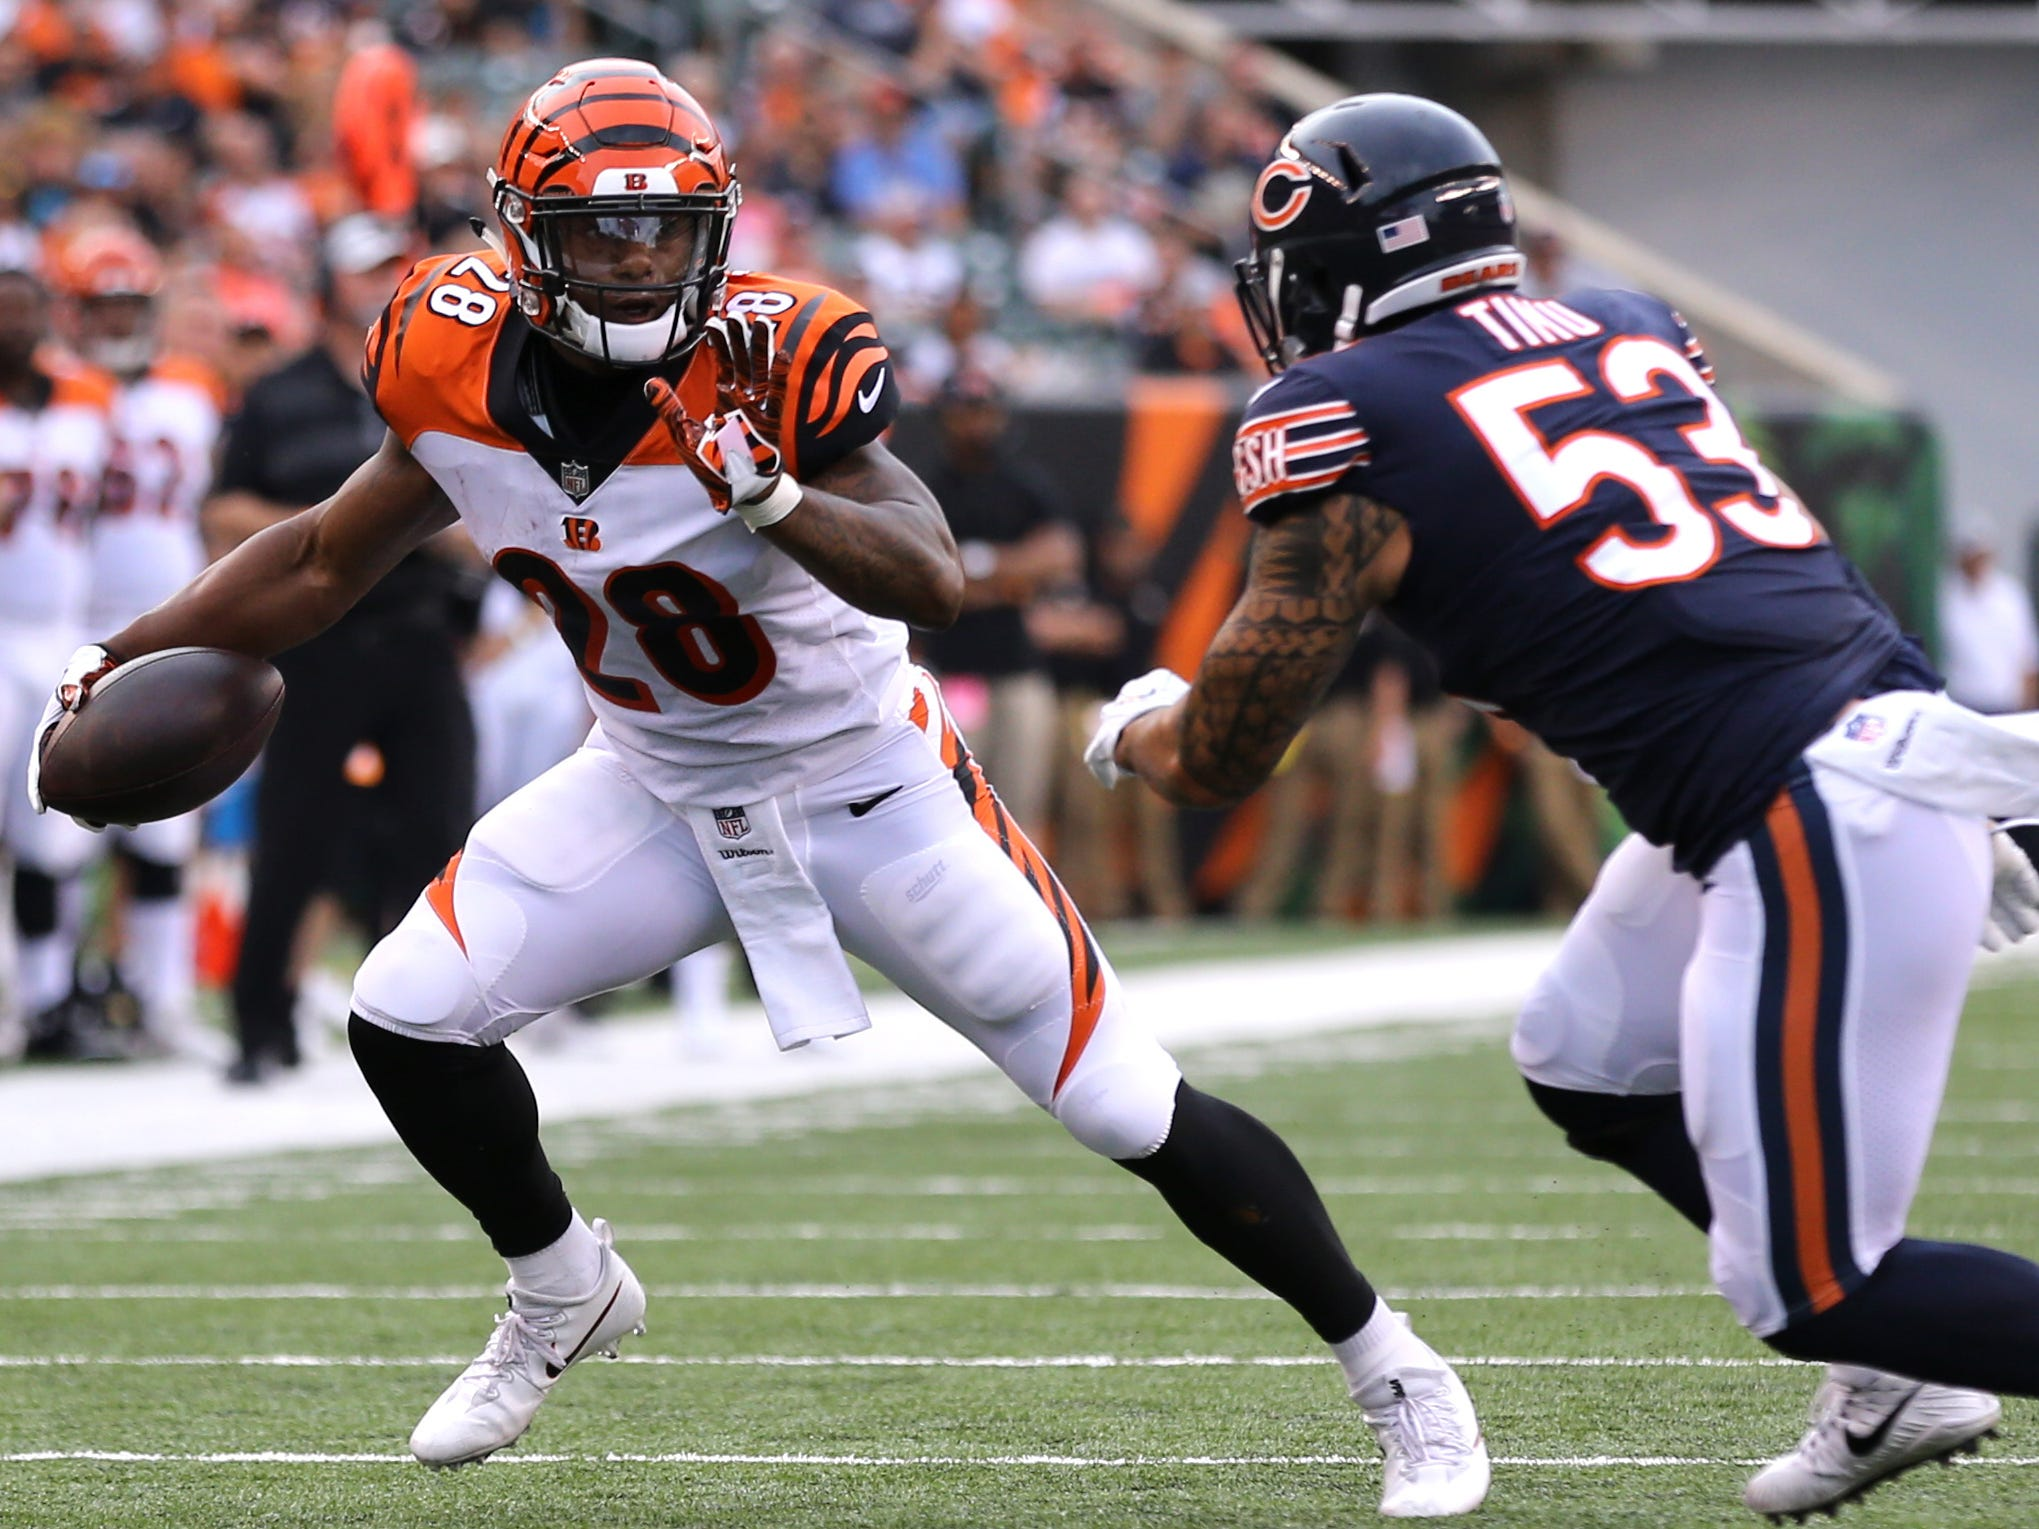 Cincinnati Bengals running back Joe Mixon (28) breaks a tackle against Chicago Bears linebacker John Timu (53) in the first half at Paul Brown Stadium.